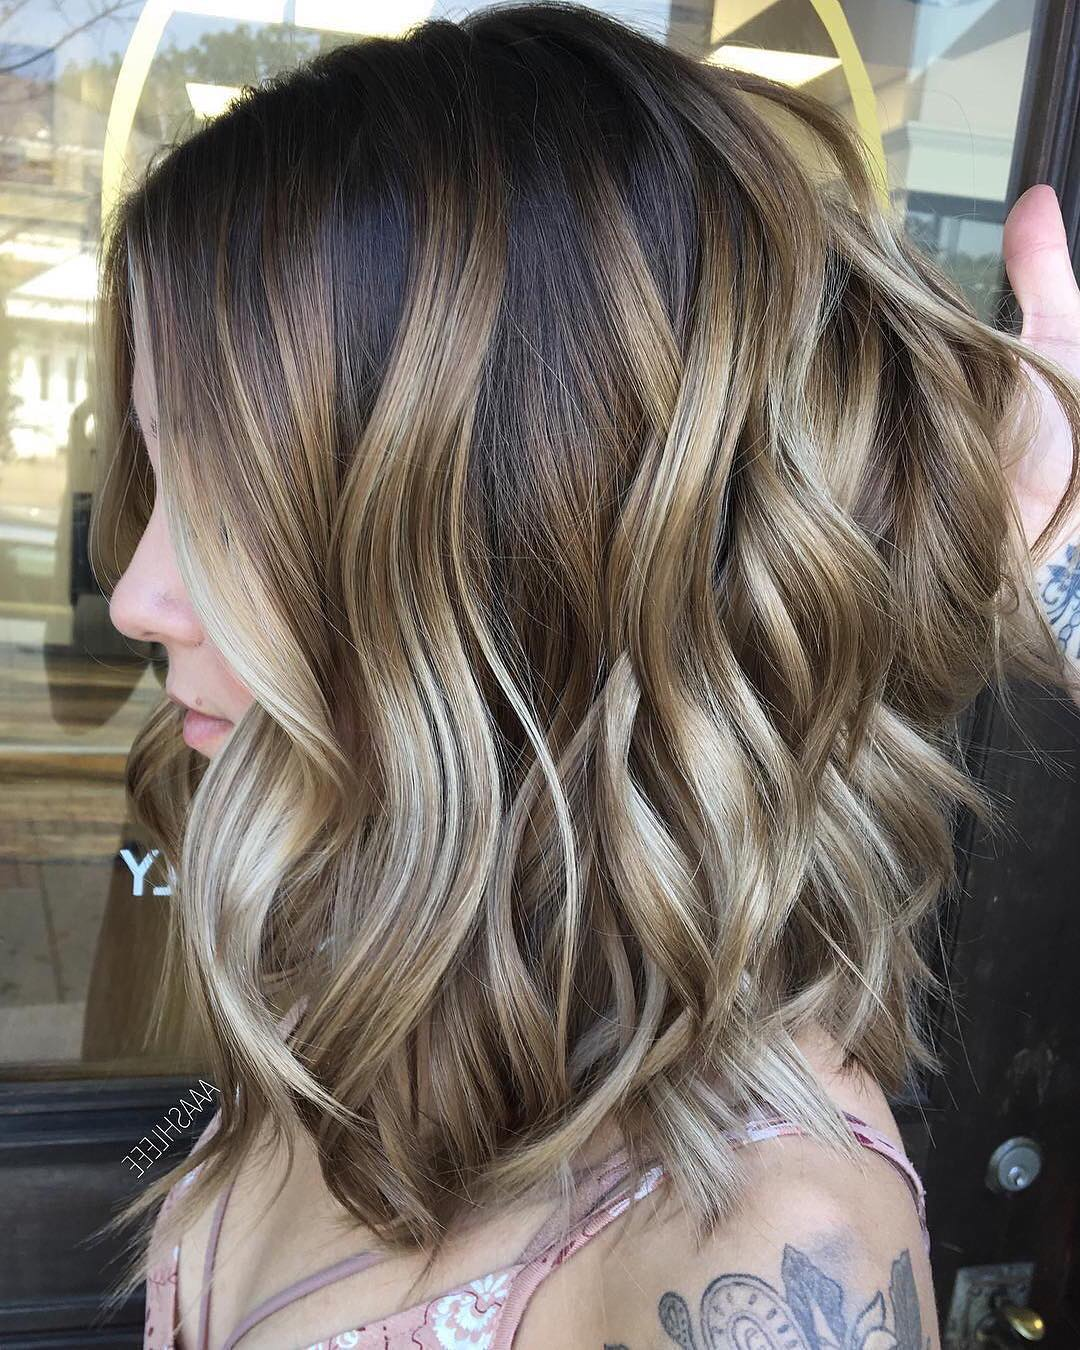 Pretty Balayage Ombre Hair Styles For Shoulder Length Medium Haircut Color Ideas